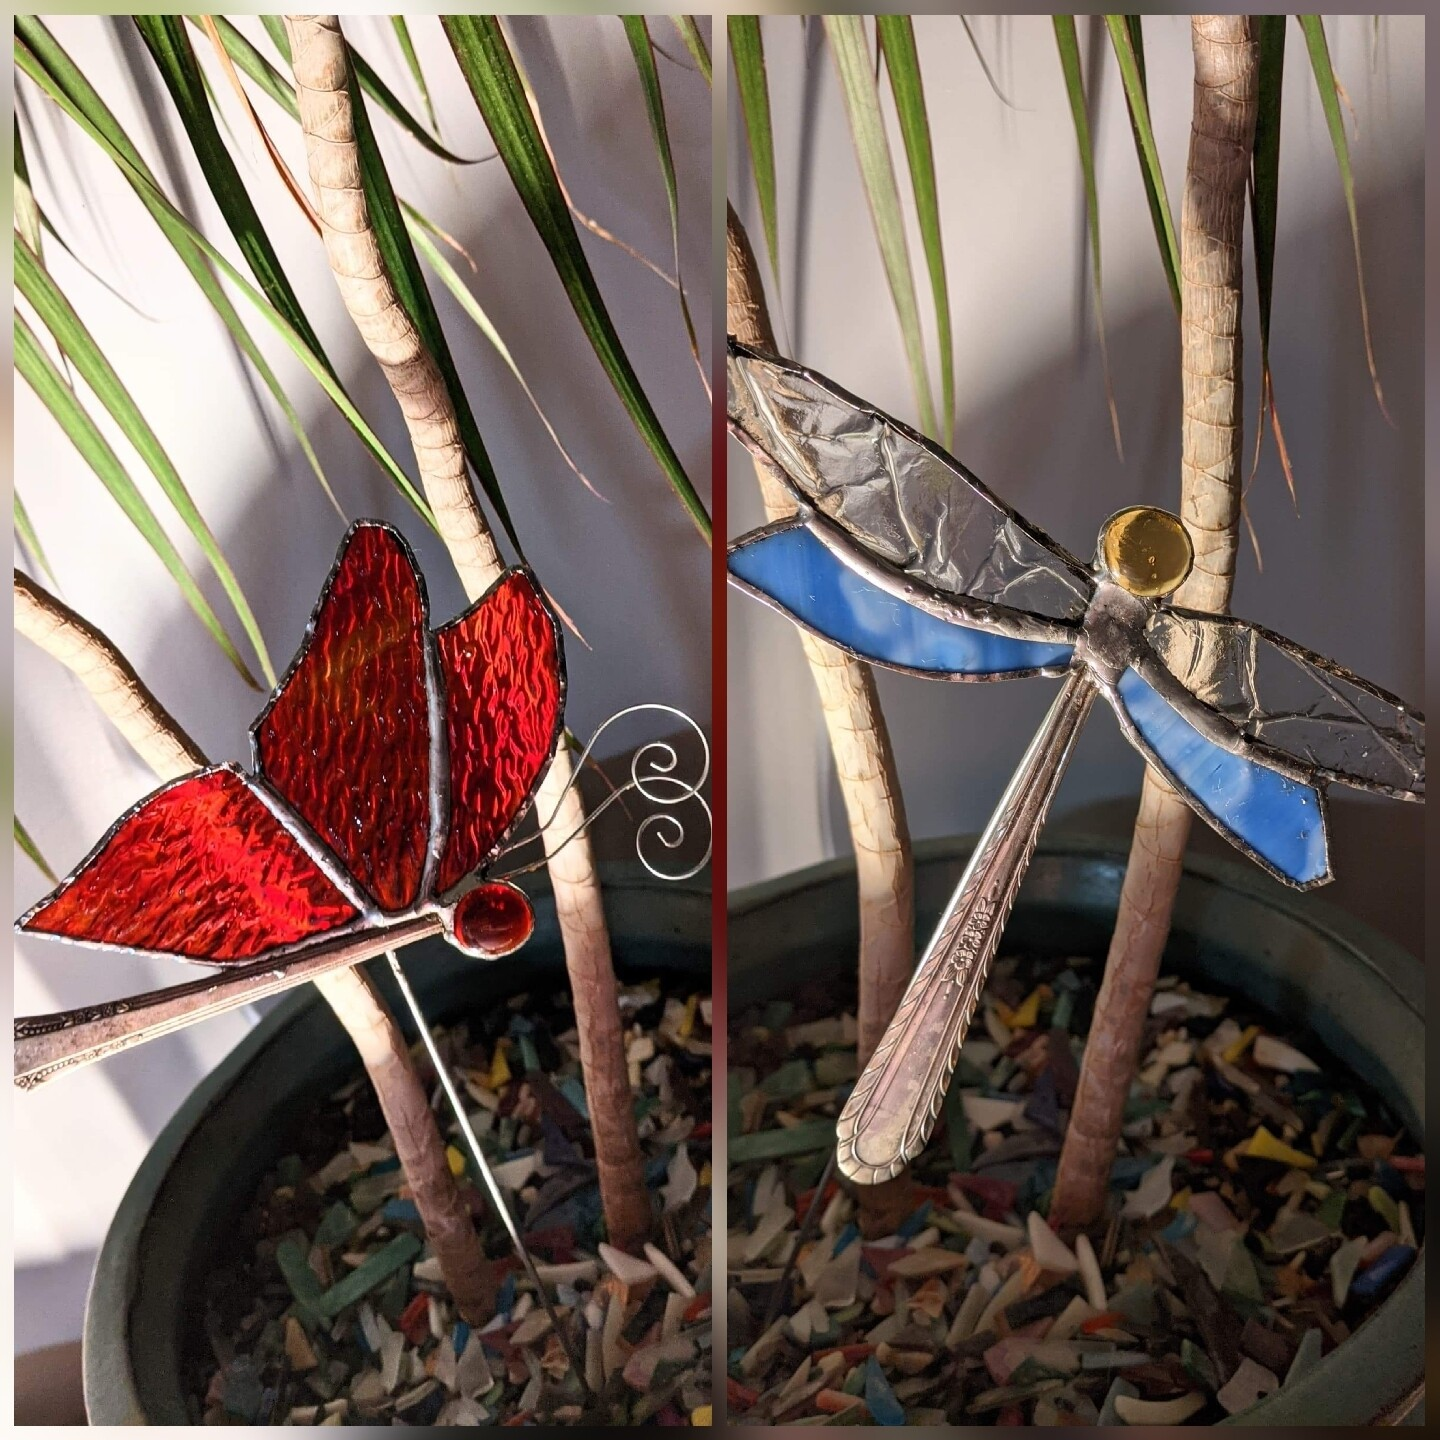 Stained glass Butterfly or Dragonfly Suncatcher*April 17th*2pm